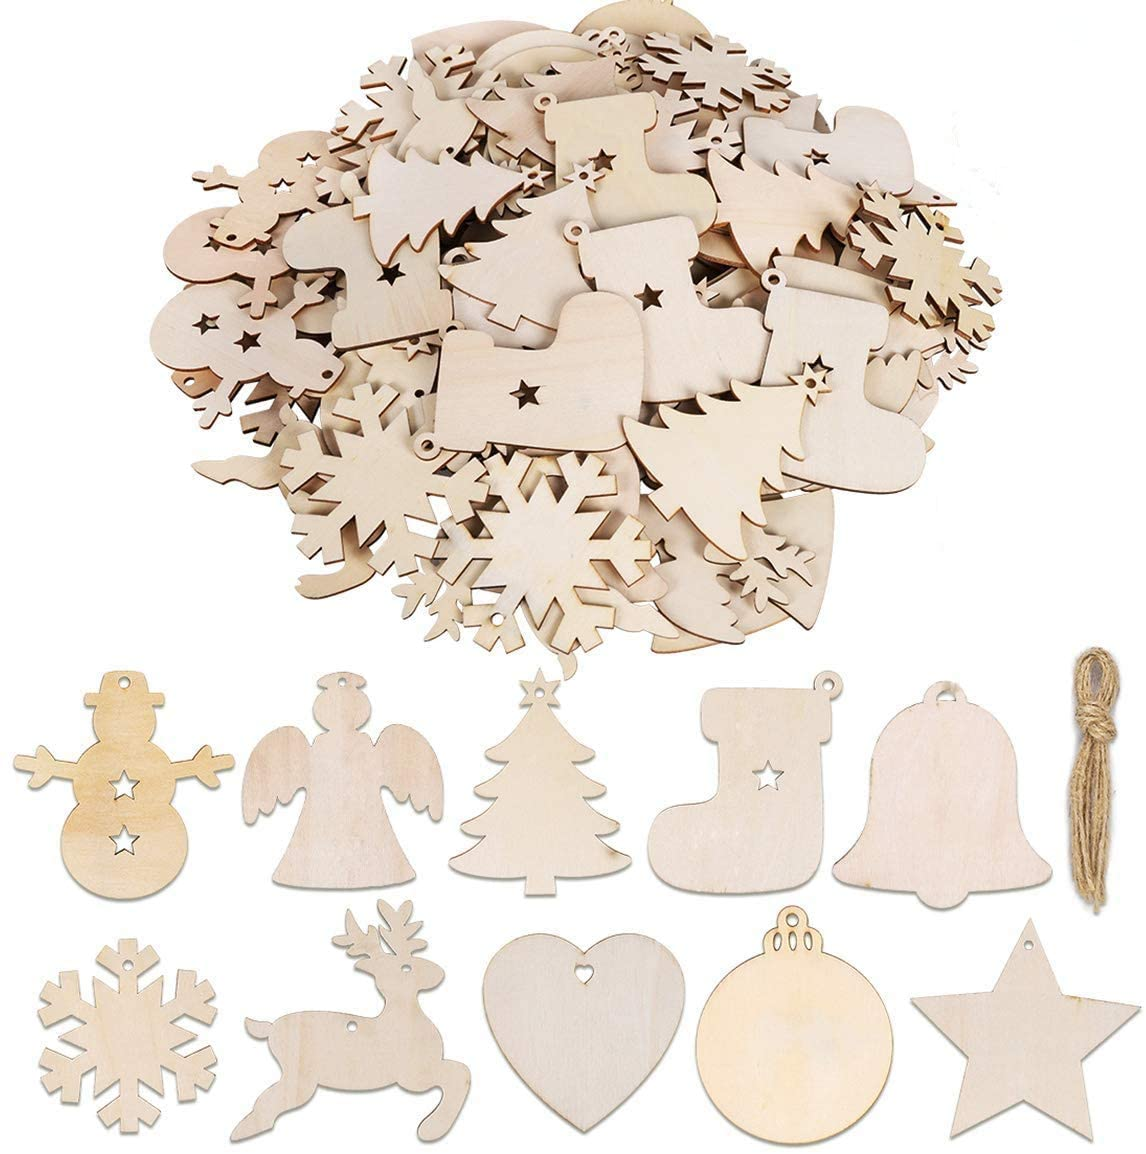 100 Pieces Unfinished Wooden Ornaments Christmas Wood Ornaments Hanging Embellishments Crafts for DIY, Christmas Hanging Decoration in 10 Shapes